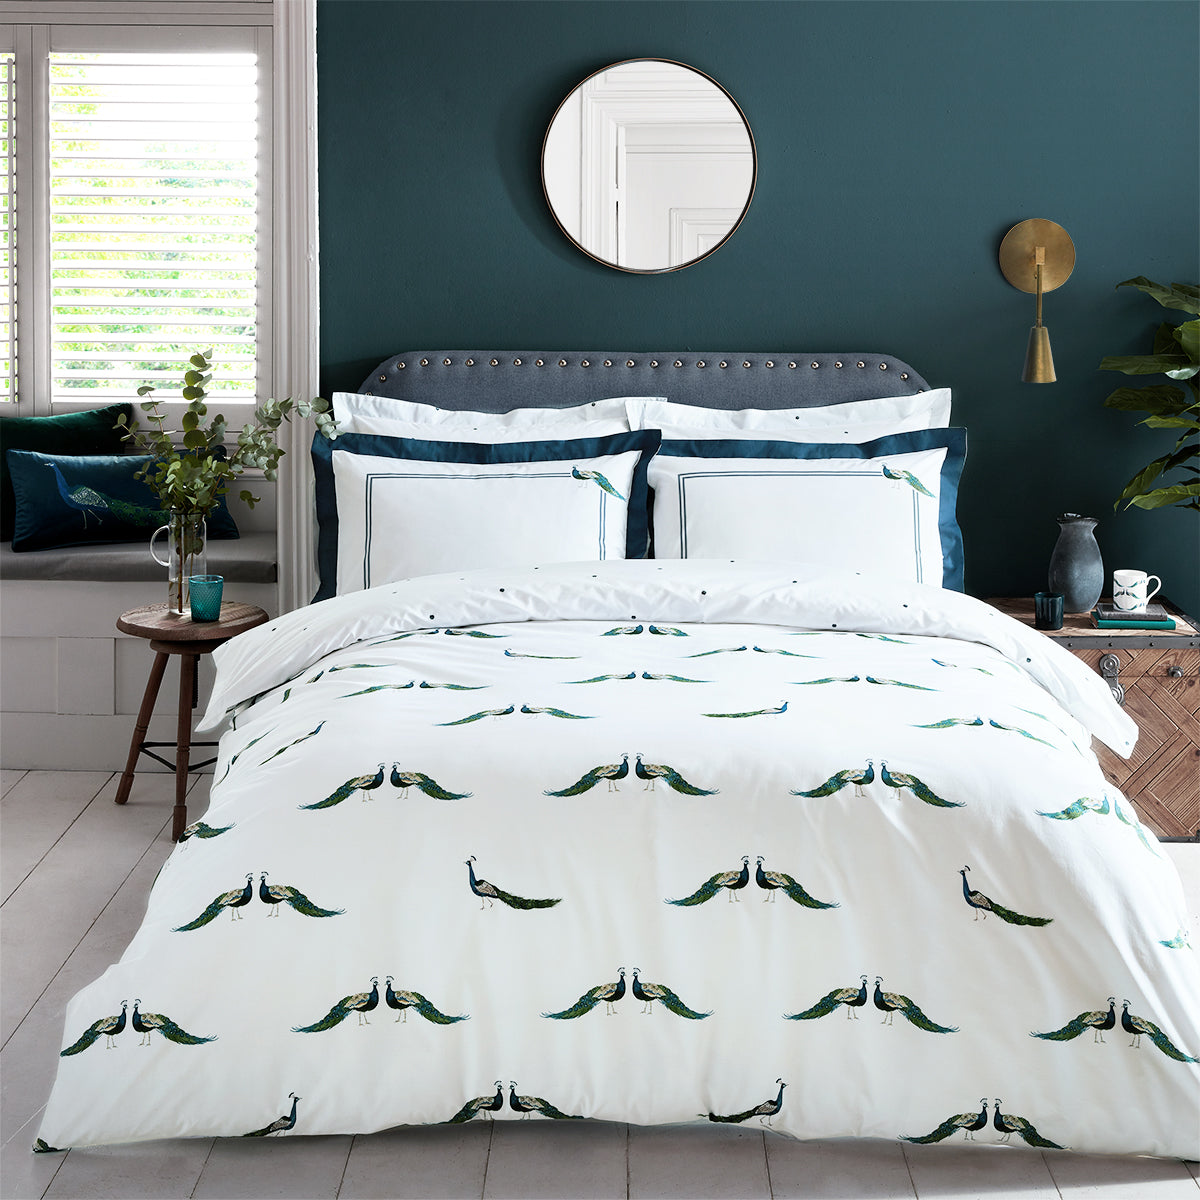 Peacocks Bedding Set